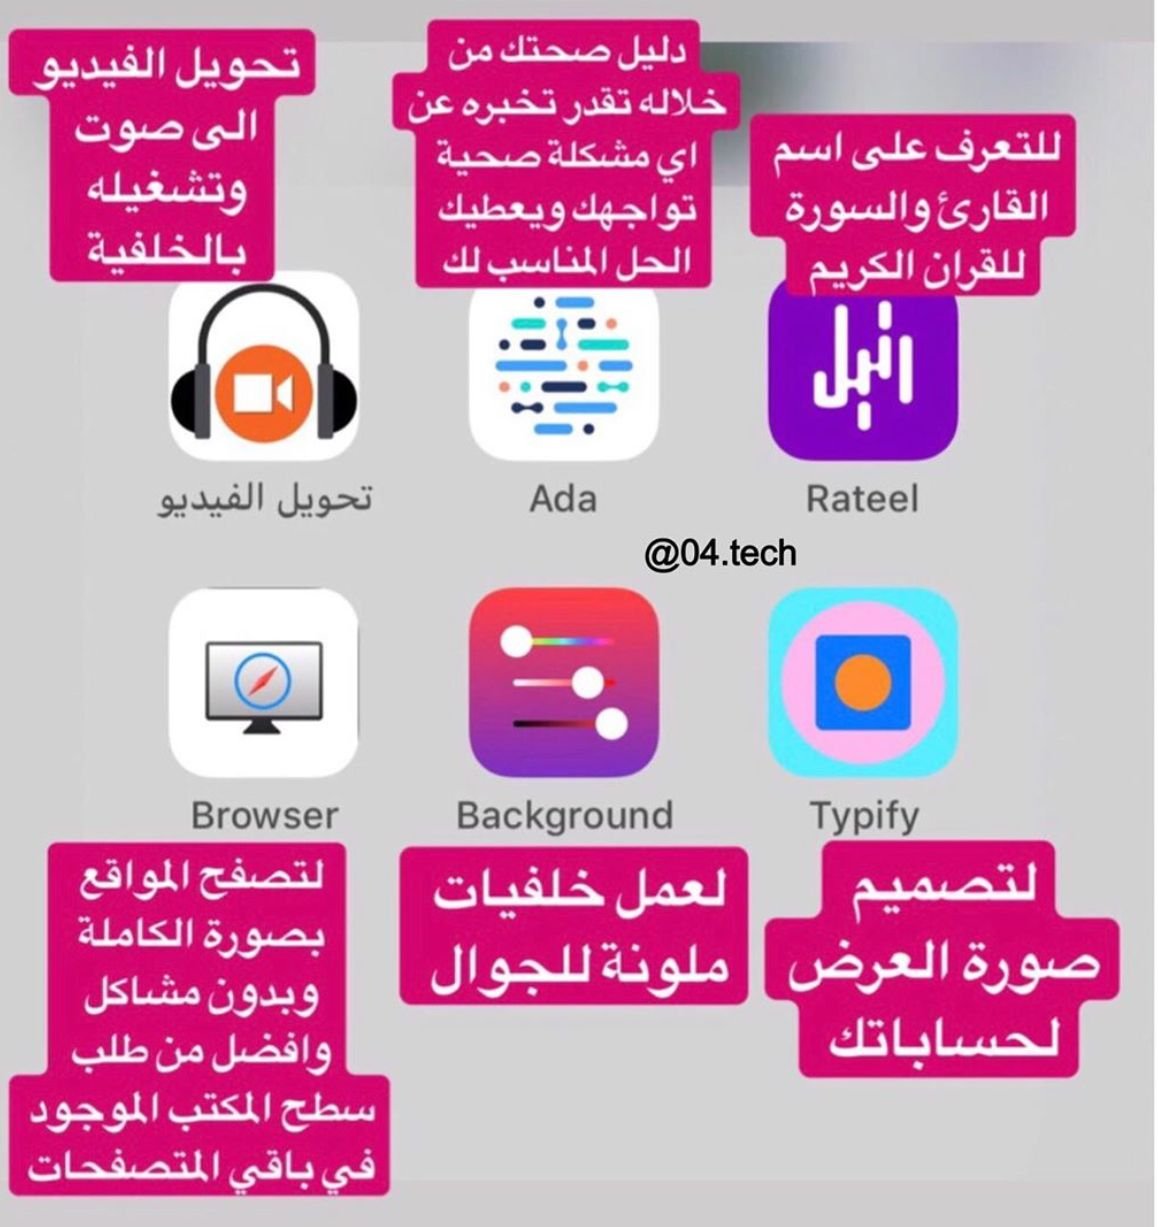 Pin by Bodoor on تطبيقات Iphone app layout, App layout